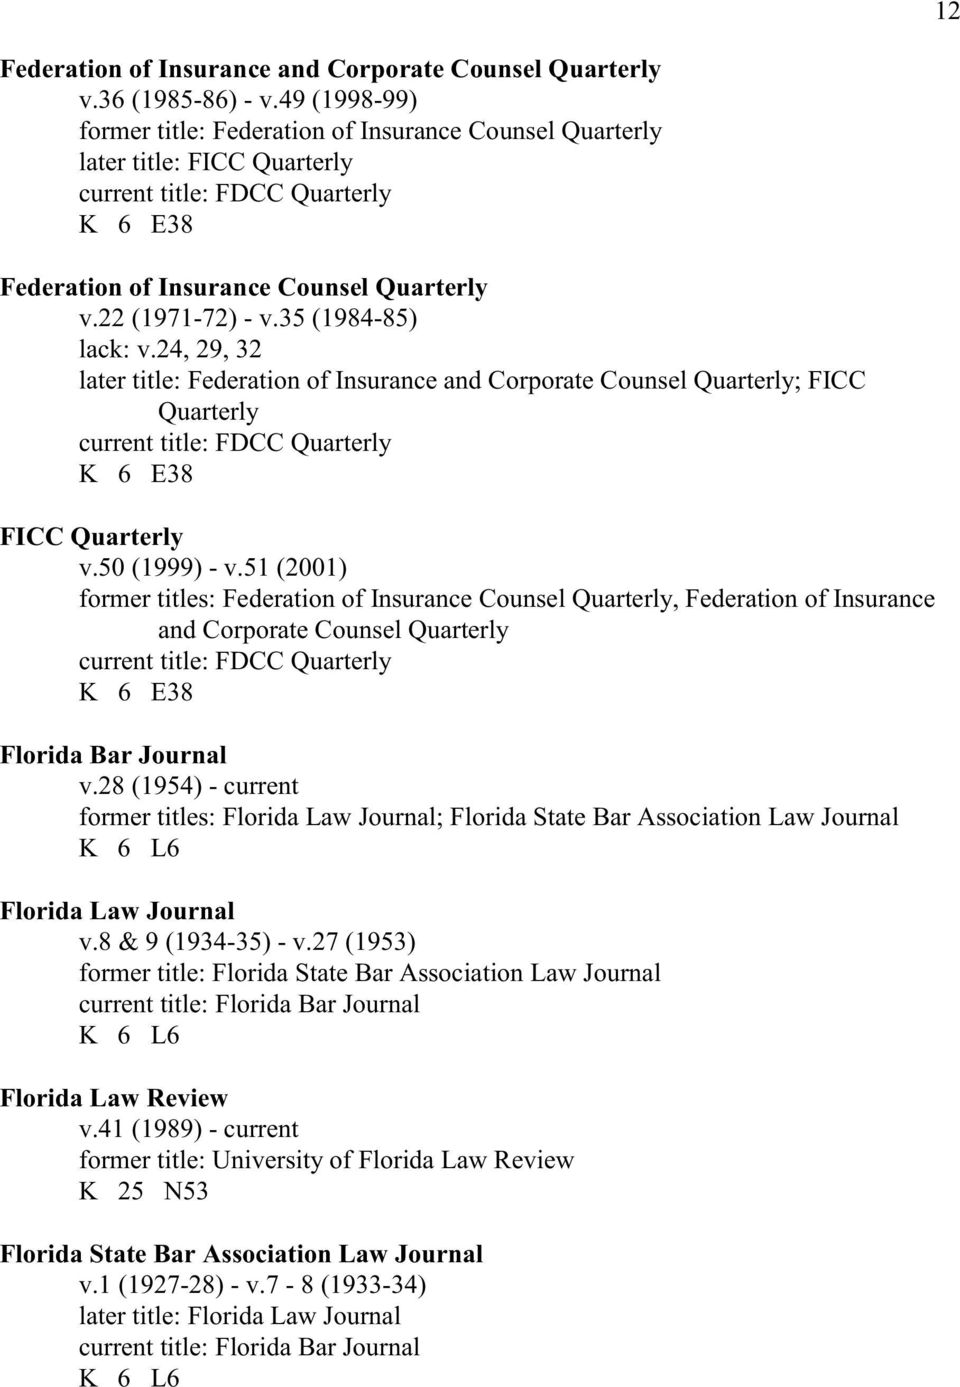 35 (1984-85) lack: v.24, 29, 32 later title: Federation of Insurance and Corporate Counsel Quarterly; FICC Quarterly current title: FDCC Quarterly K 6 E38 FICC Quarterly v.50 (1999) - v.